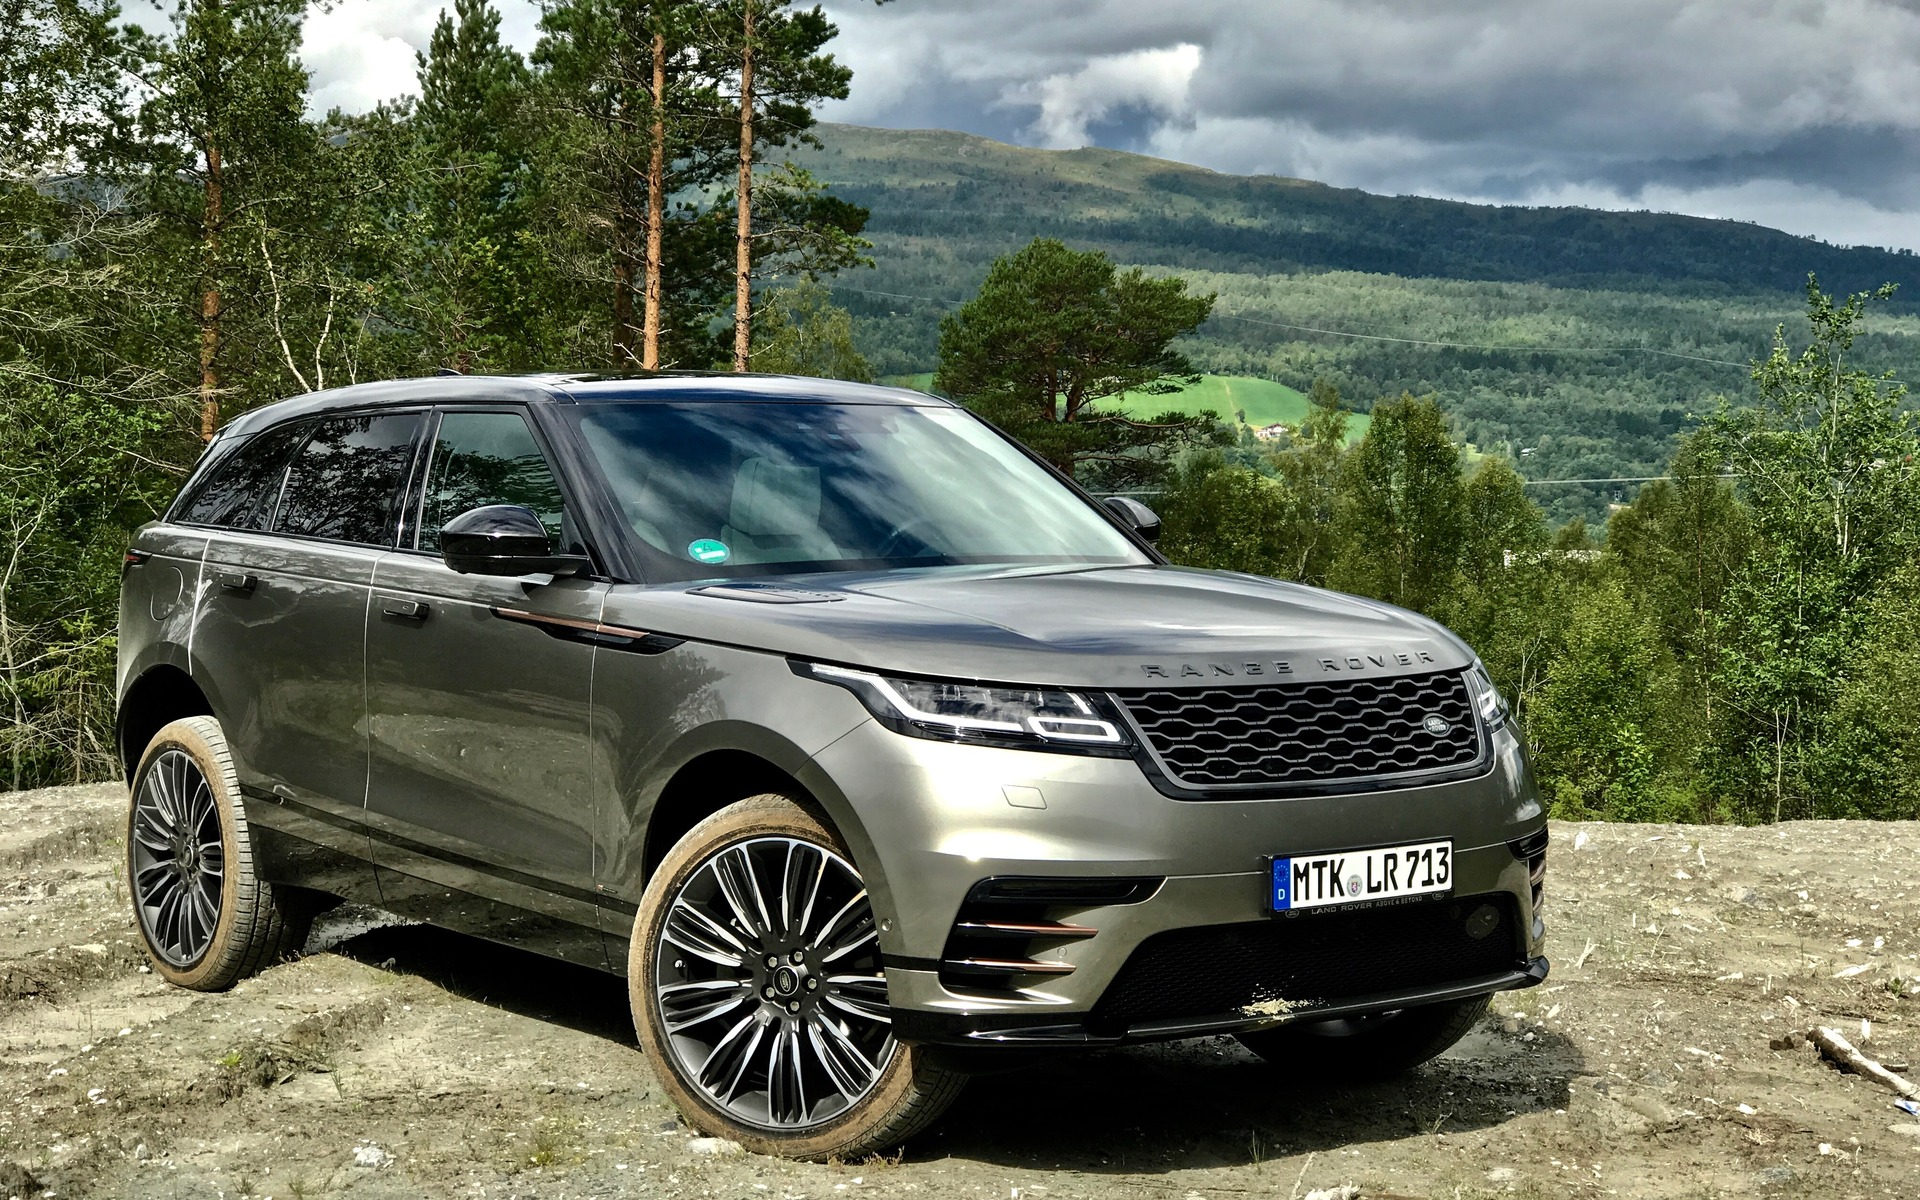 Land Rover Velar >> 2018 Range Rover Velar: A Distinguished Off-roader - 2/34